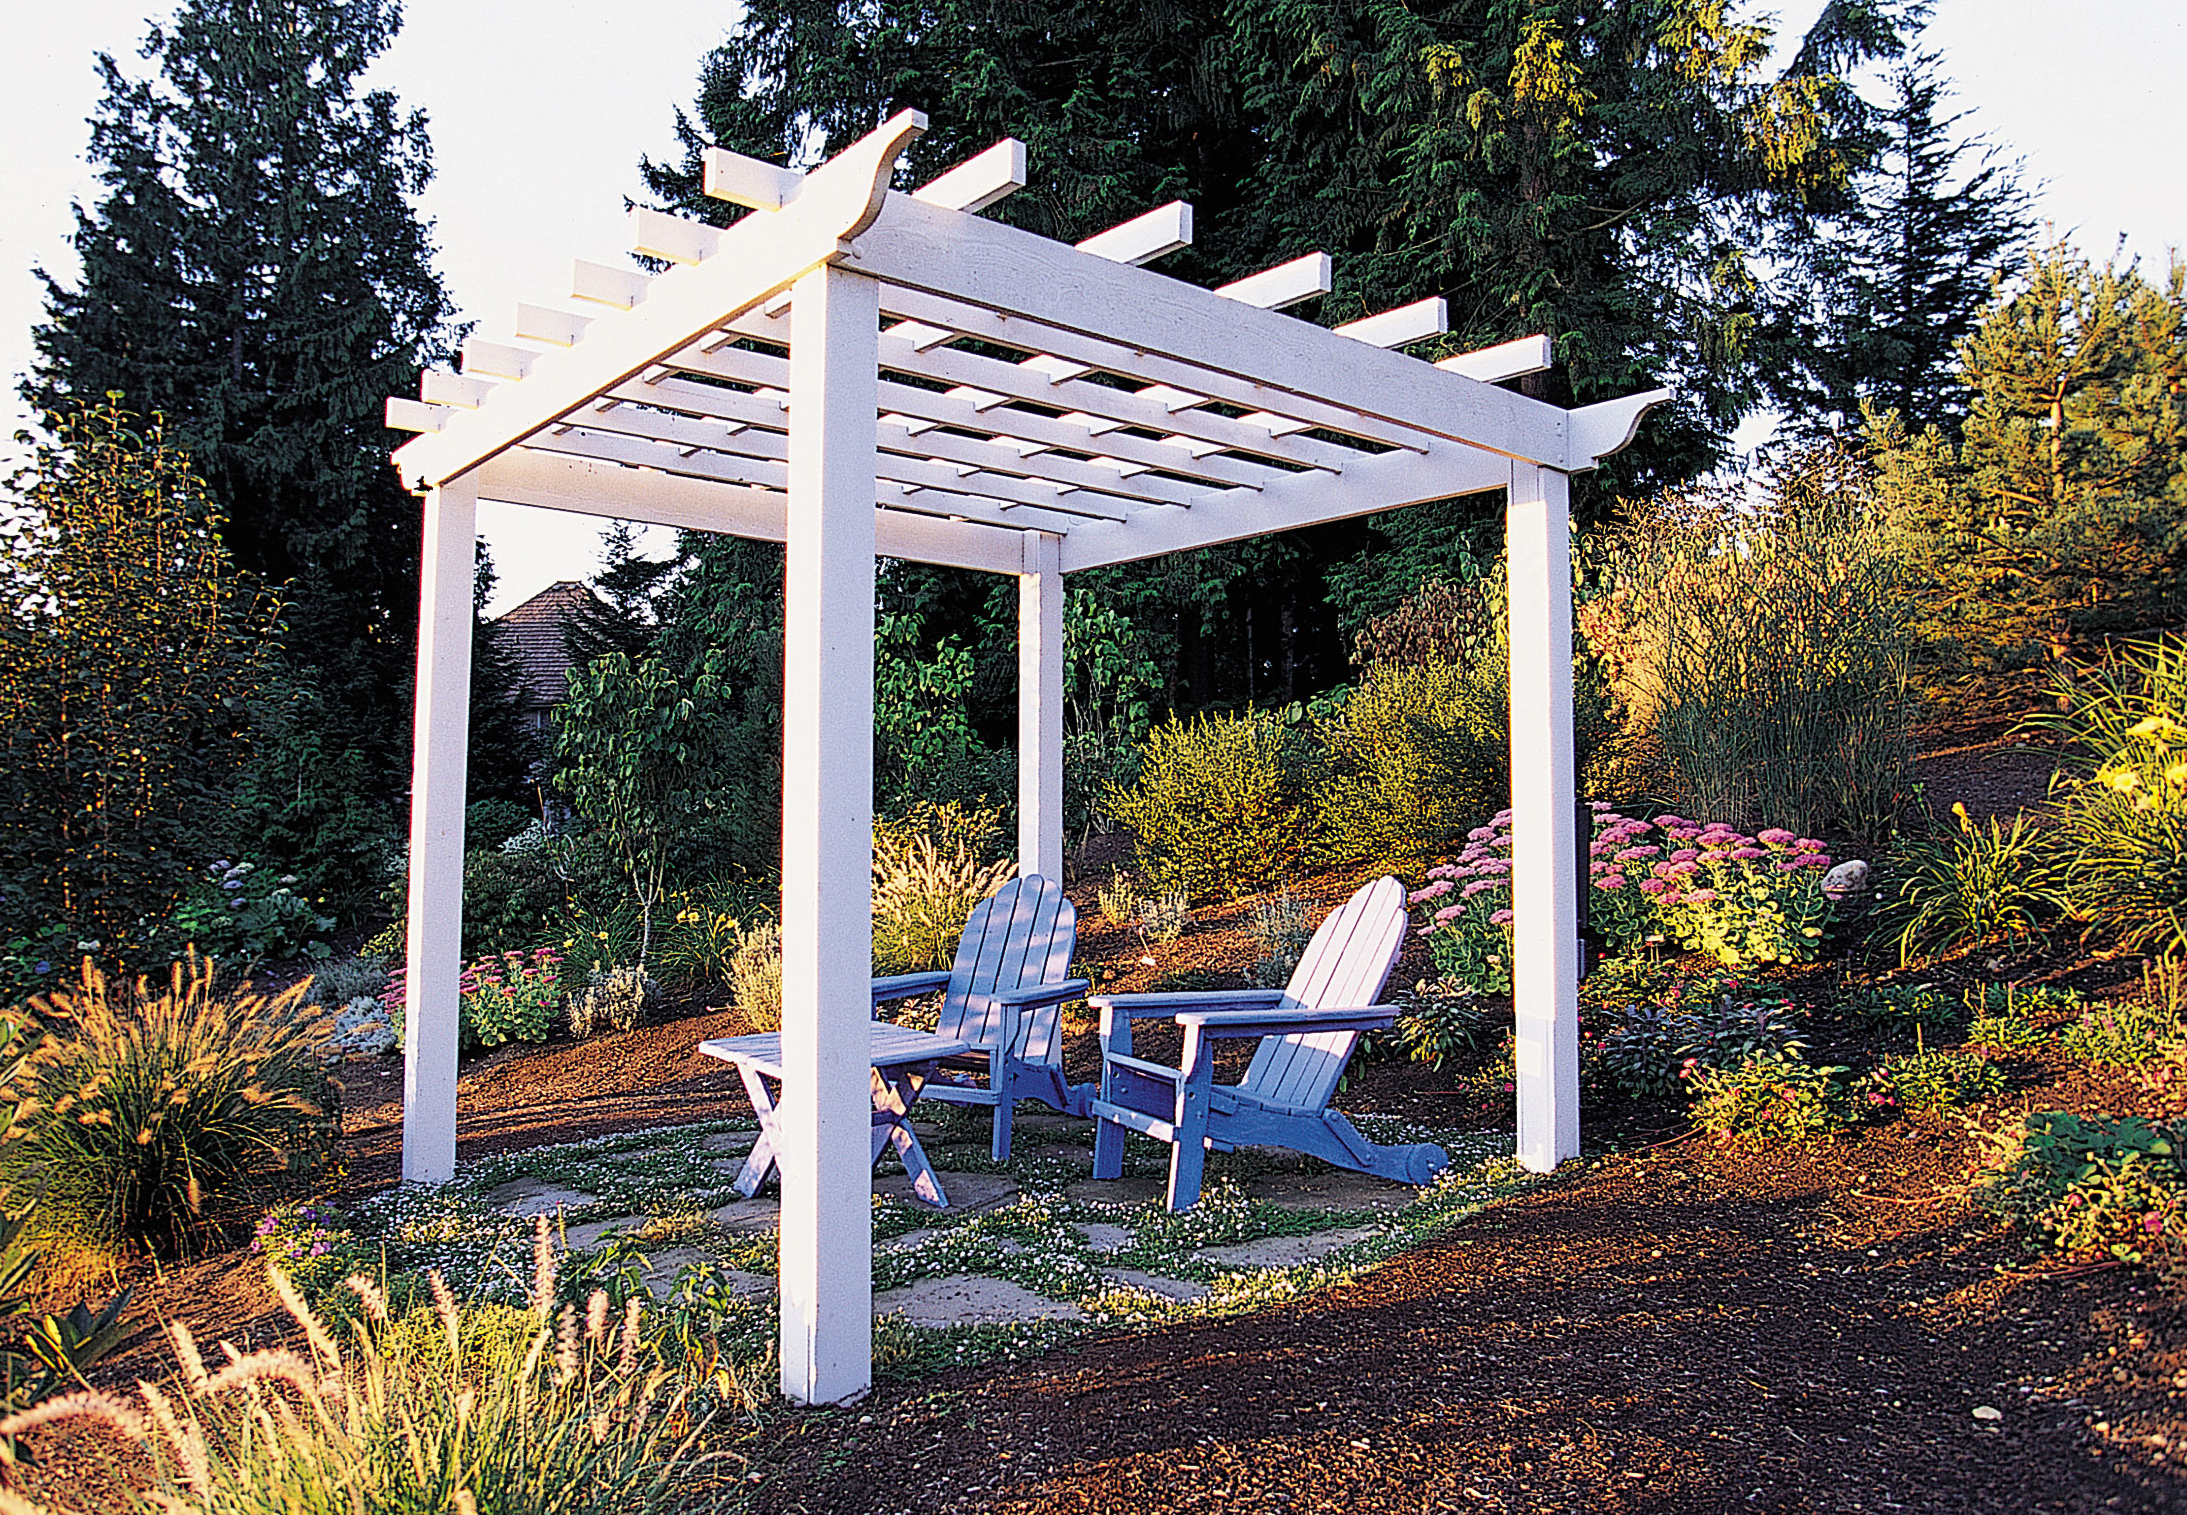 Nice Trellis Gardening Ideas Part - 7: How To Make A Great Garden Trellis Or Arbor